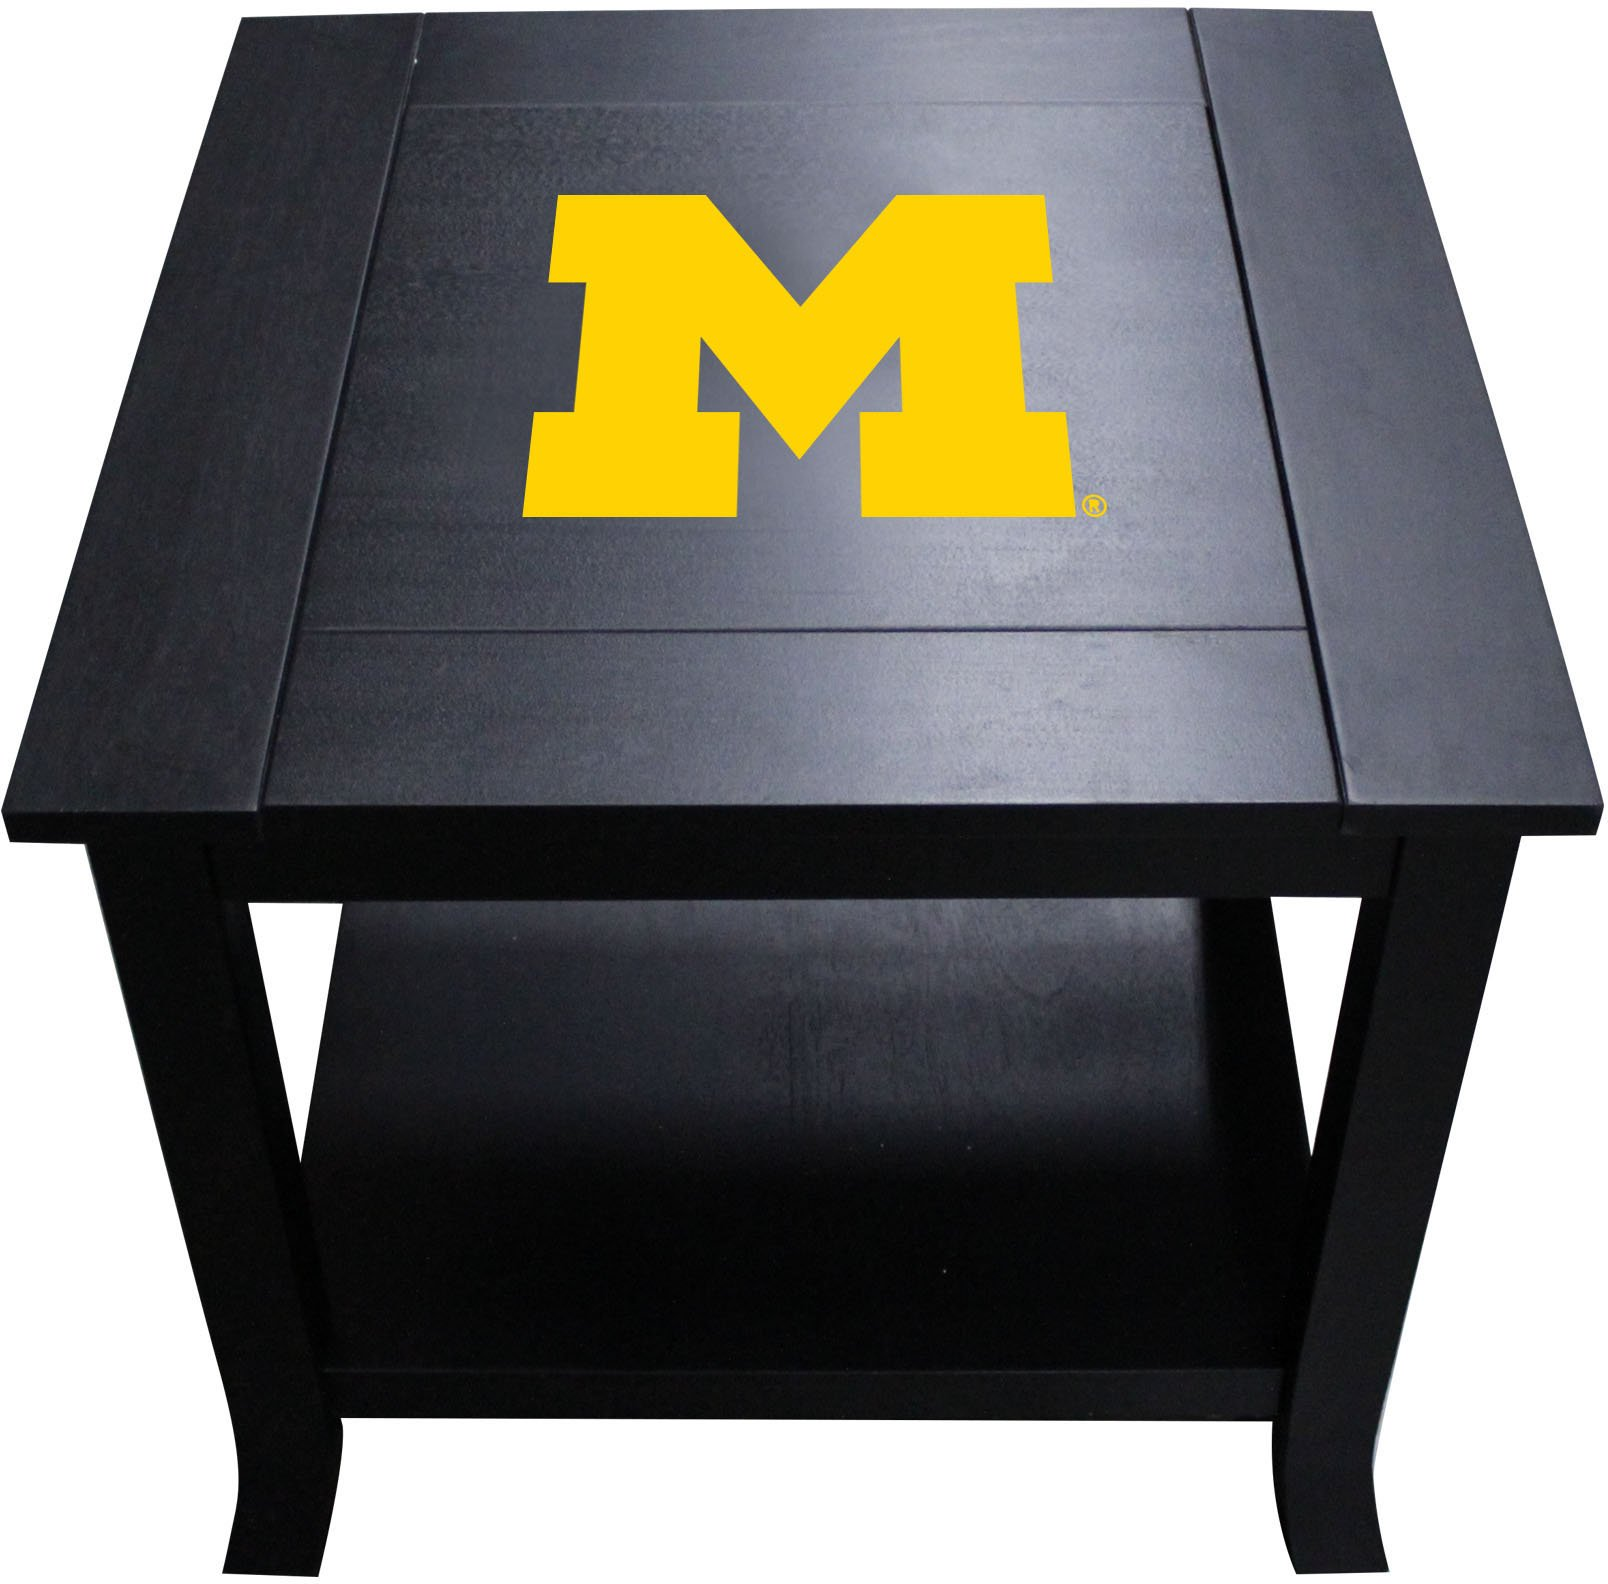 Imperial Officially Licensed NCAA Furniture: Hardwood Side/End Table, Michigan Wolverines by Imperial